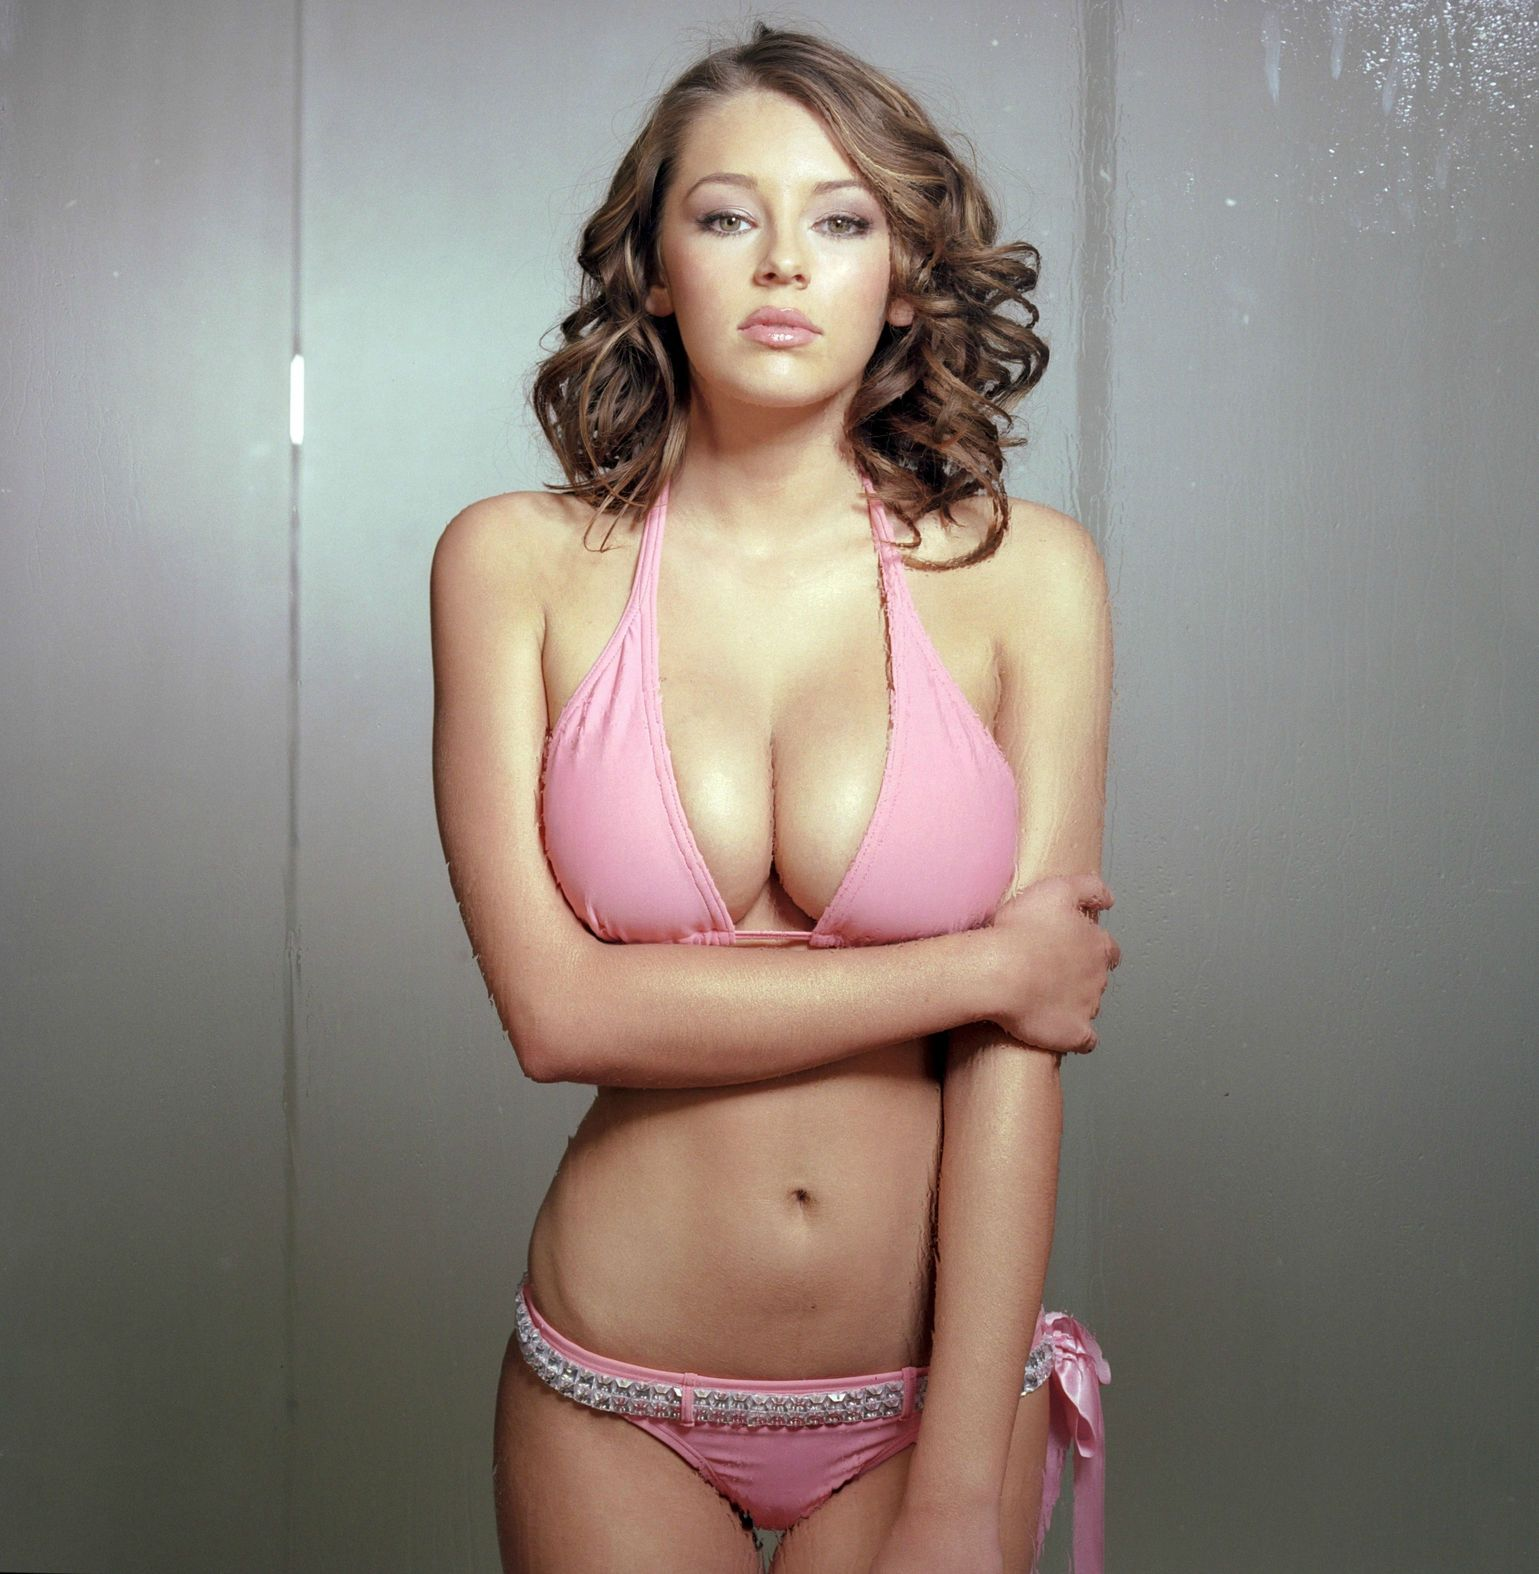 What kind keeley hazell sucks dick needs chain that